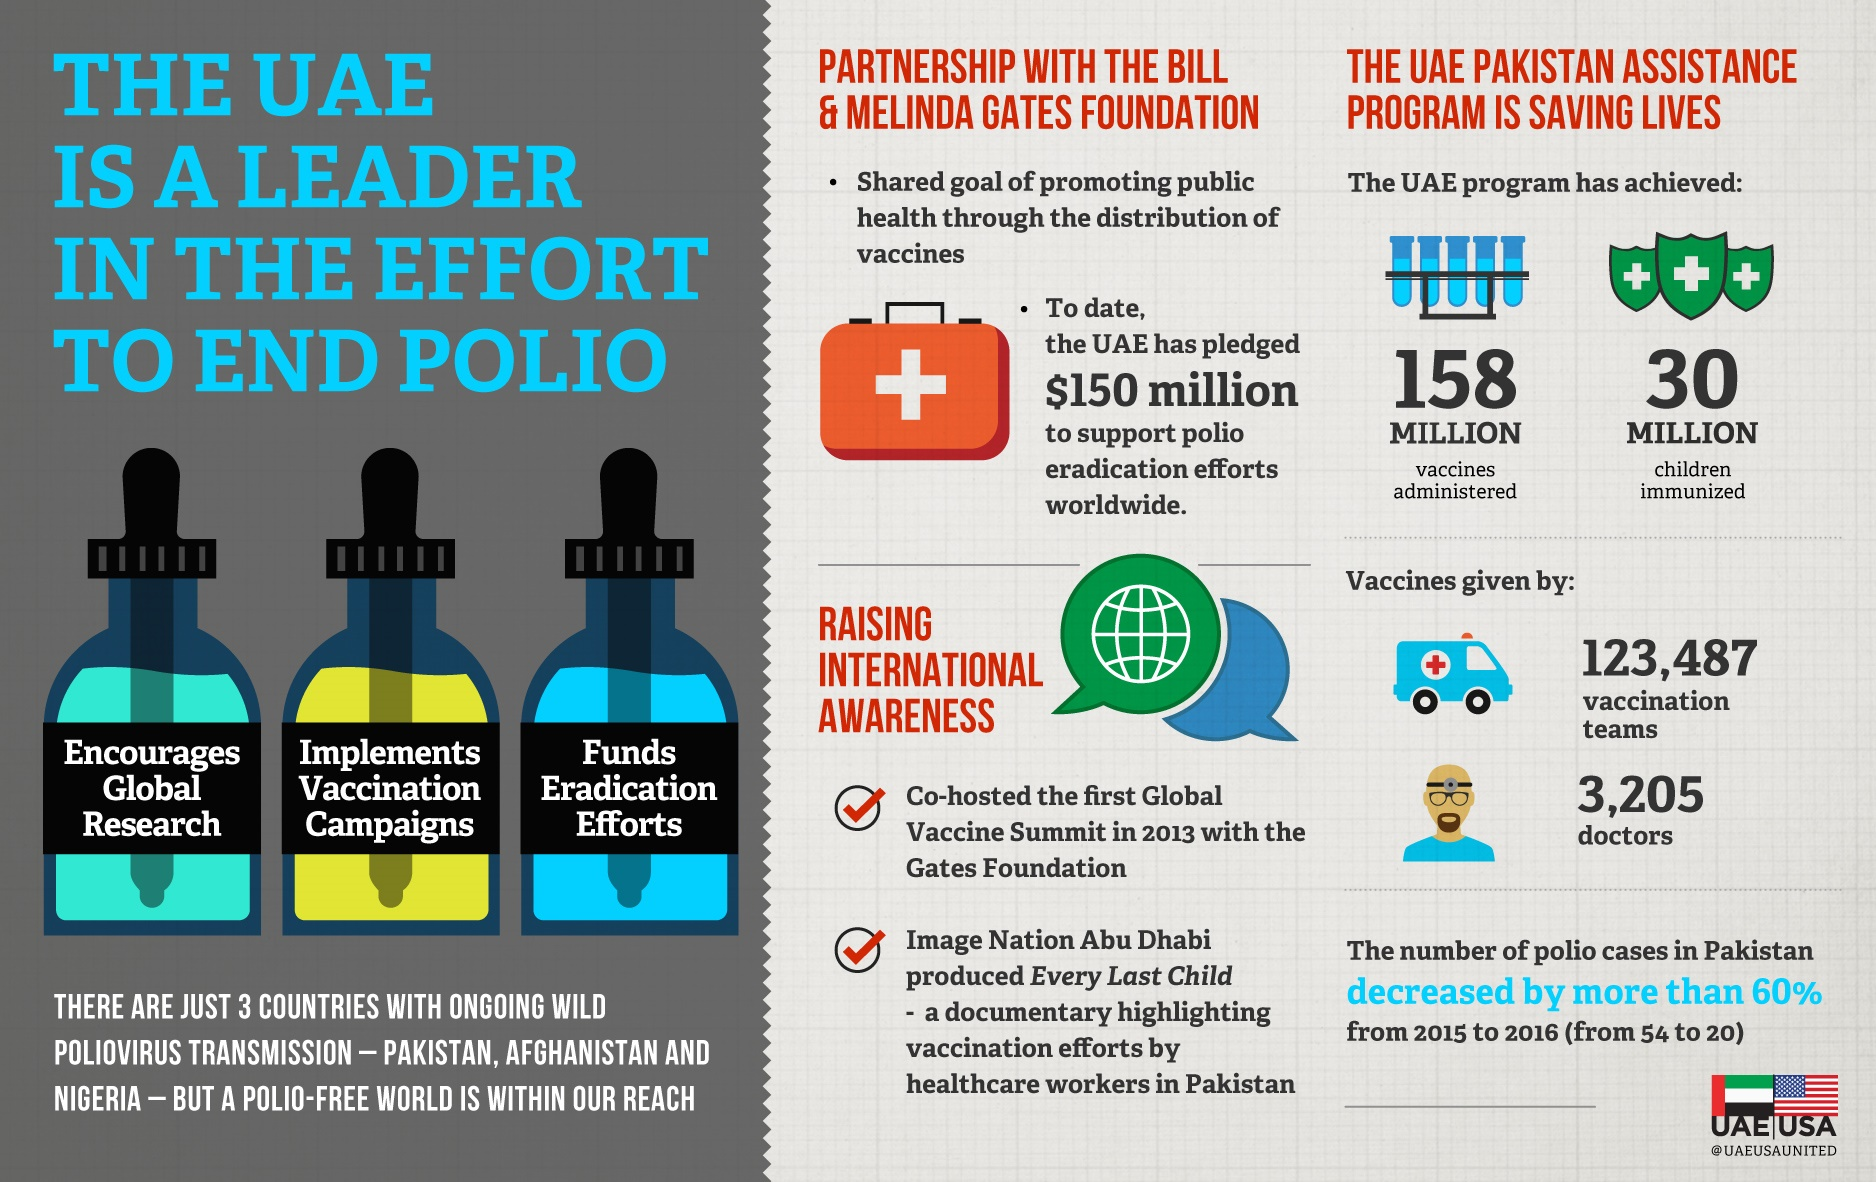 UAE Polio Eradication